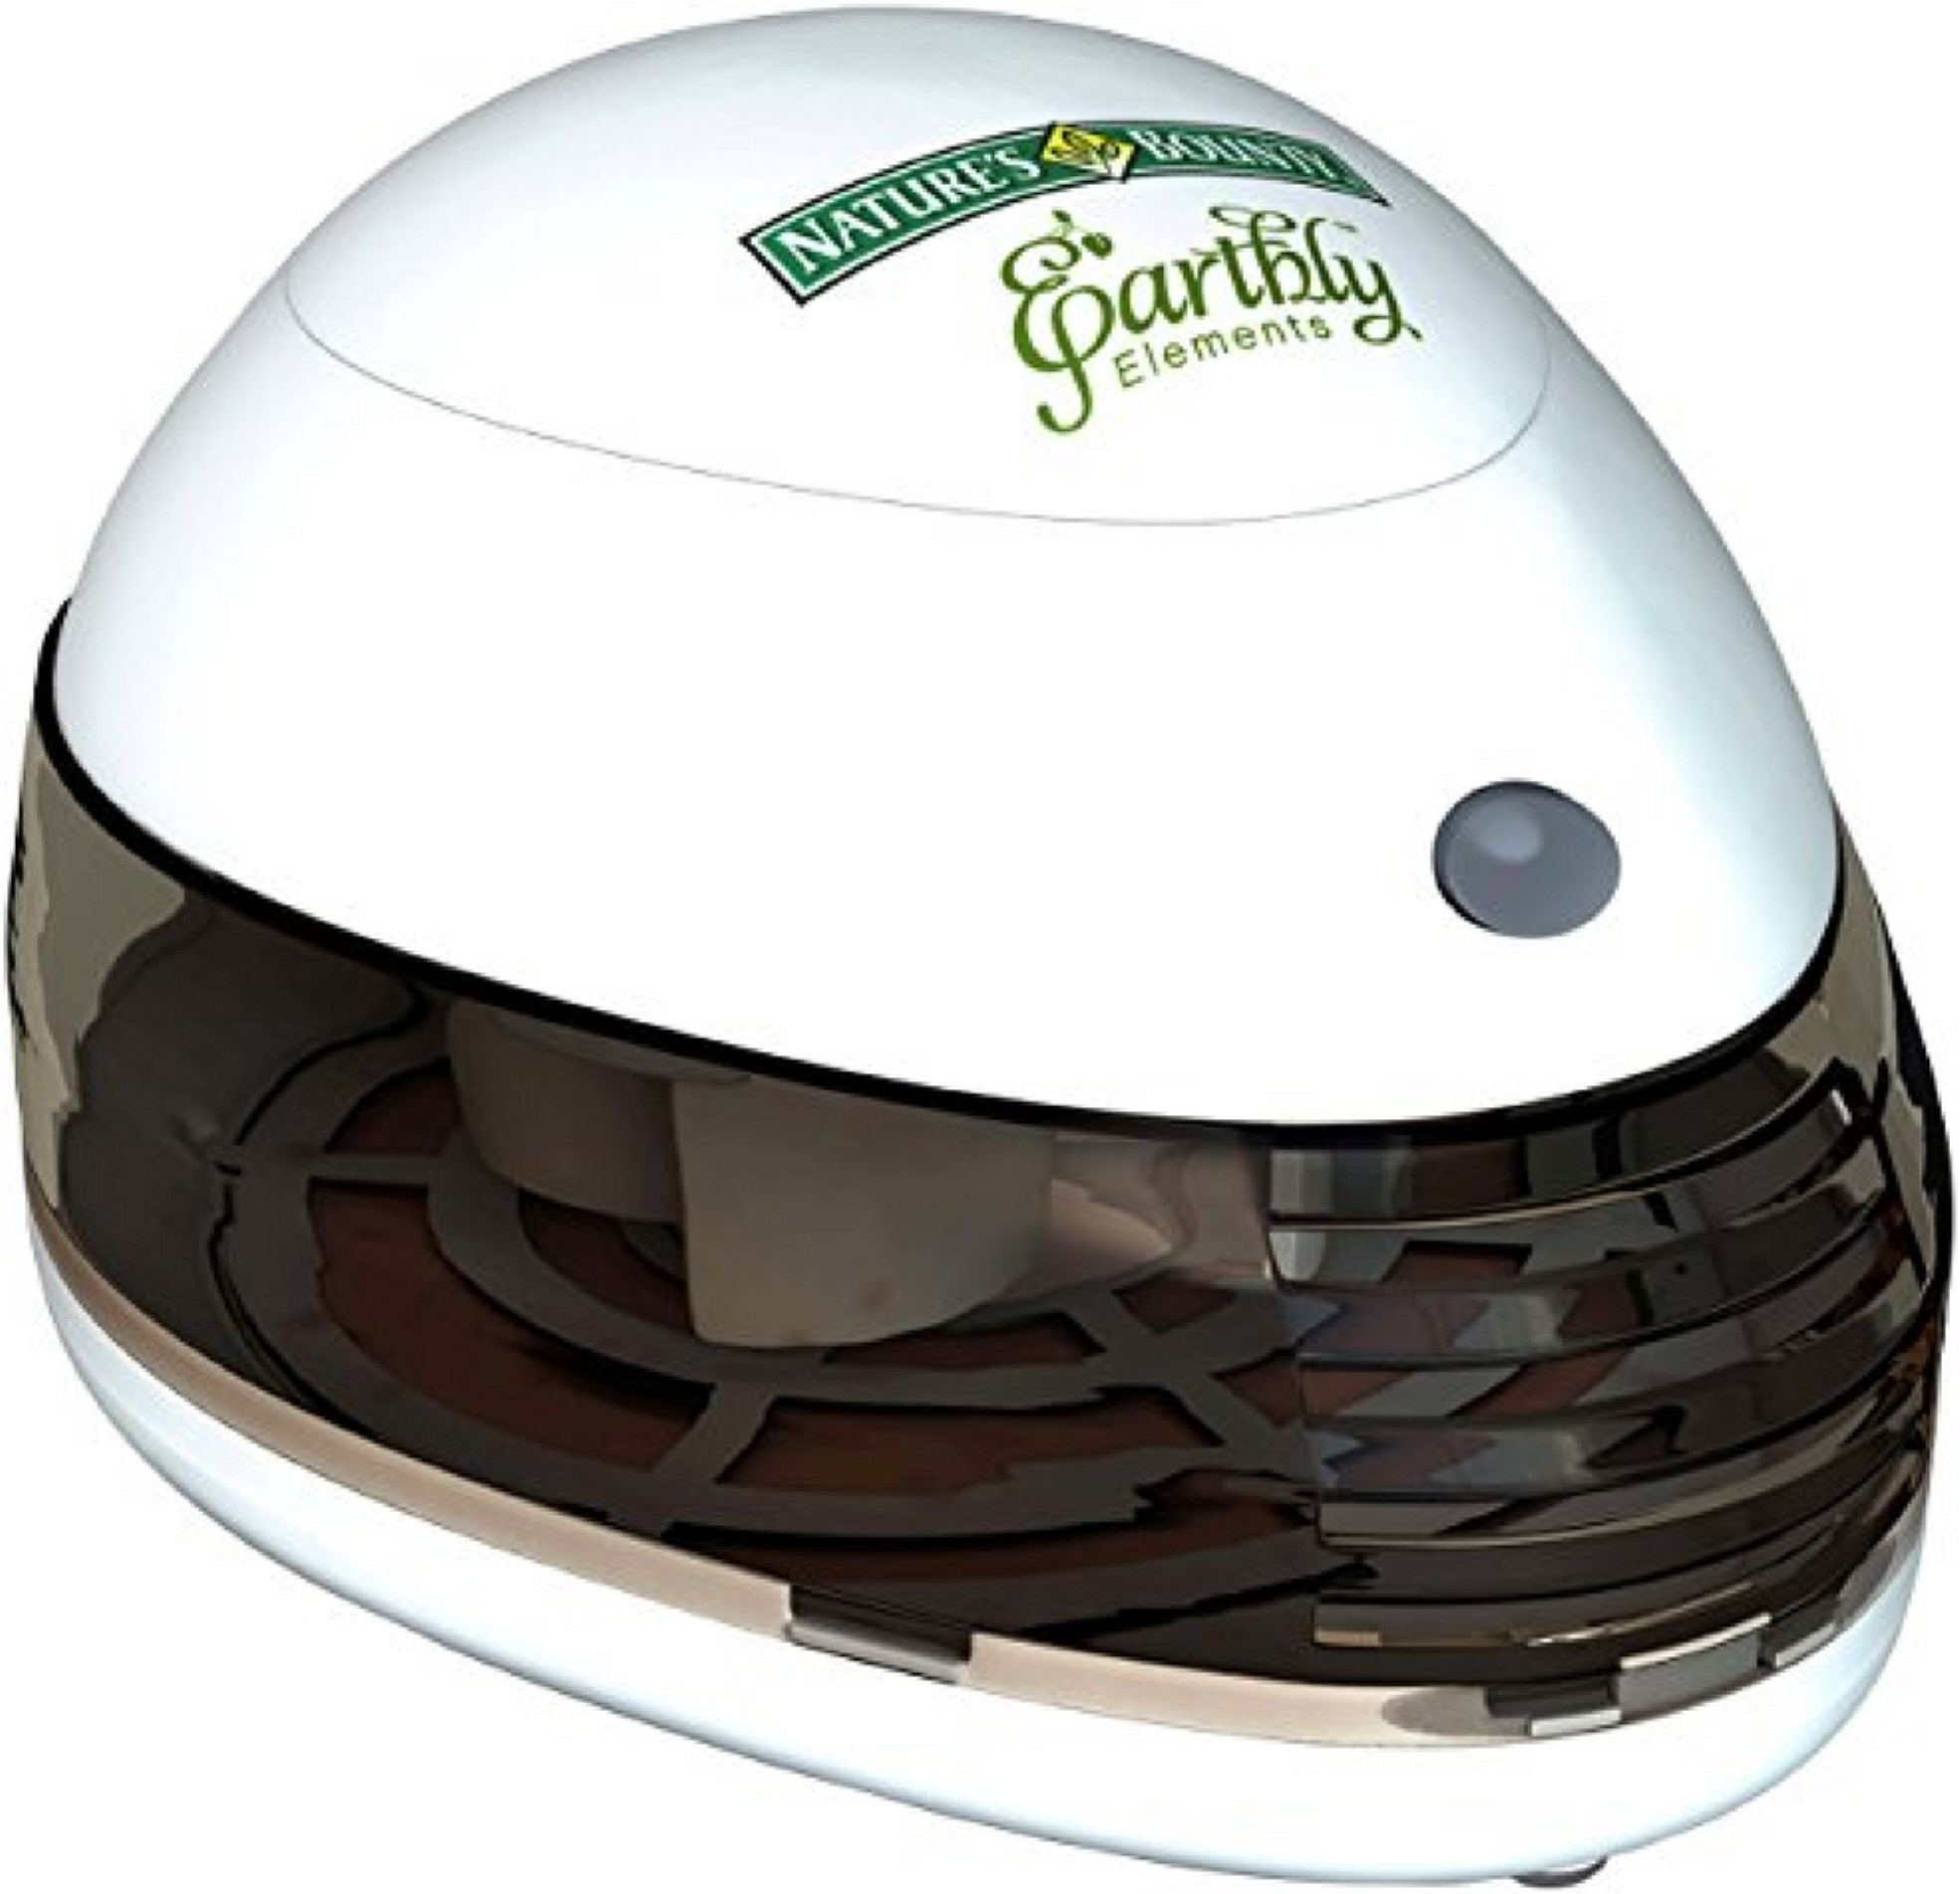 Nature's Bounty® Earthly Elements Aromatherapy Diffuser